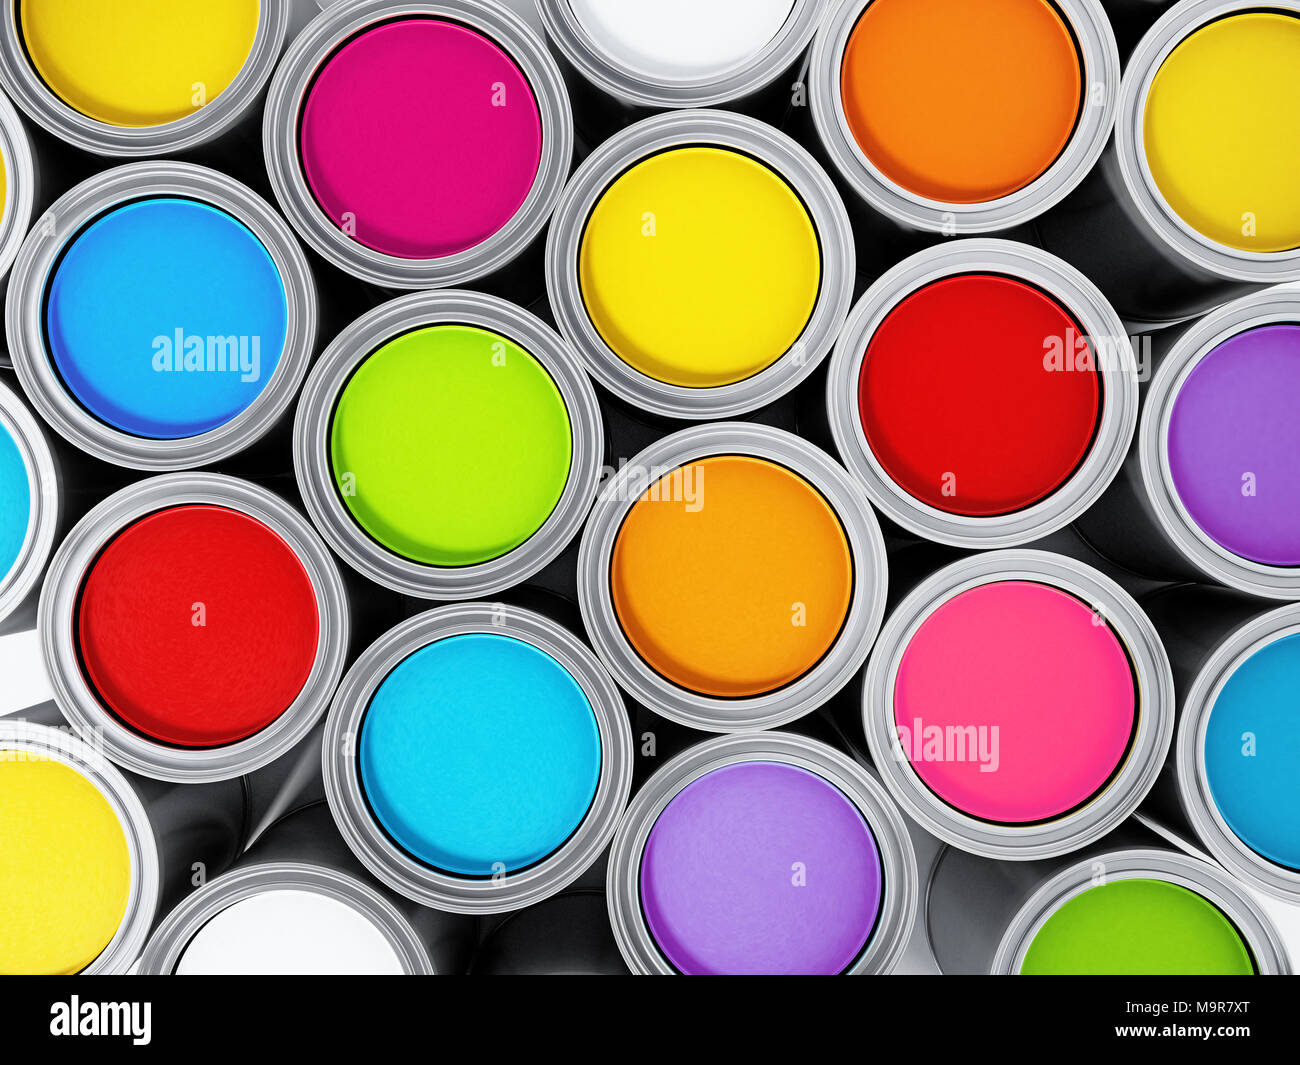 paint cans stock photos paint cans stock images page 3 alamy